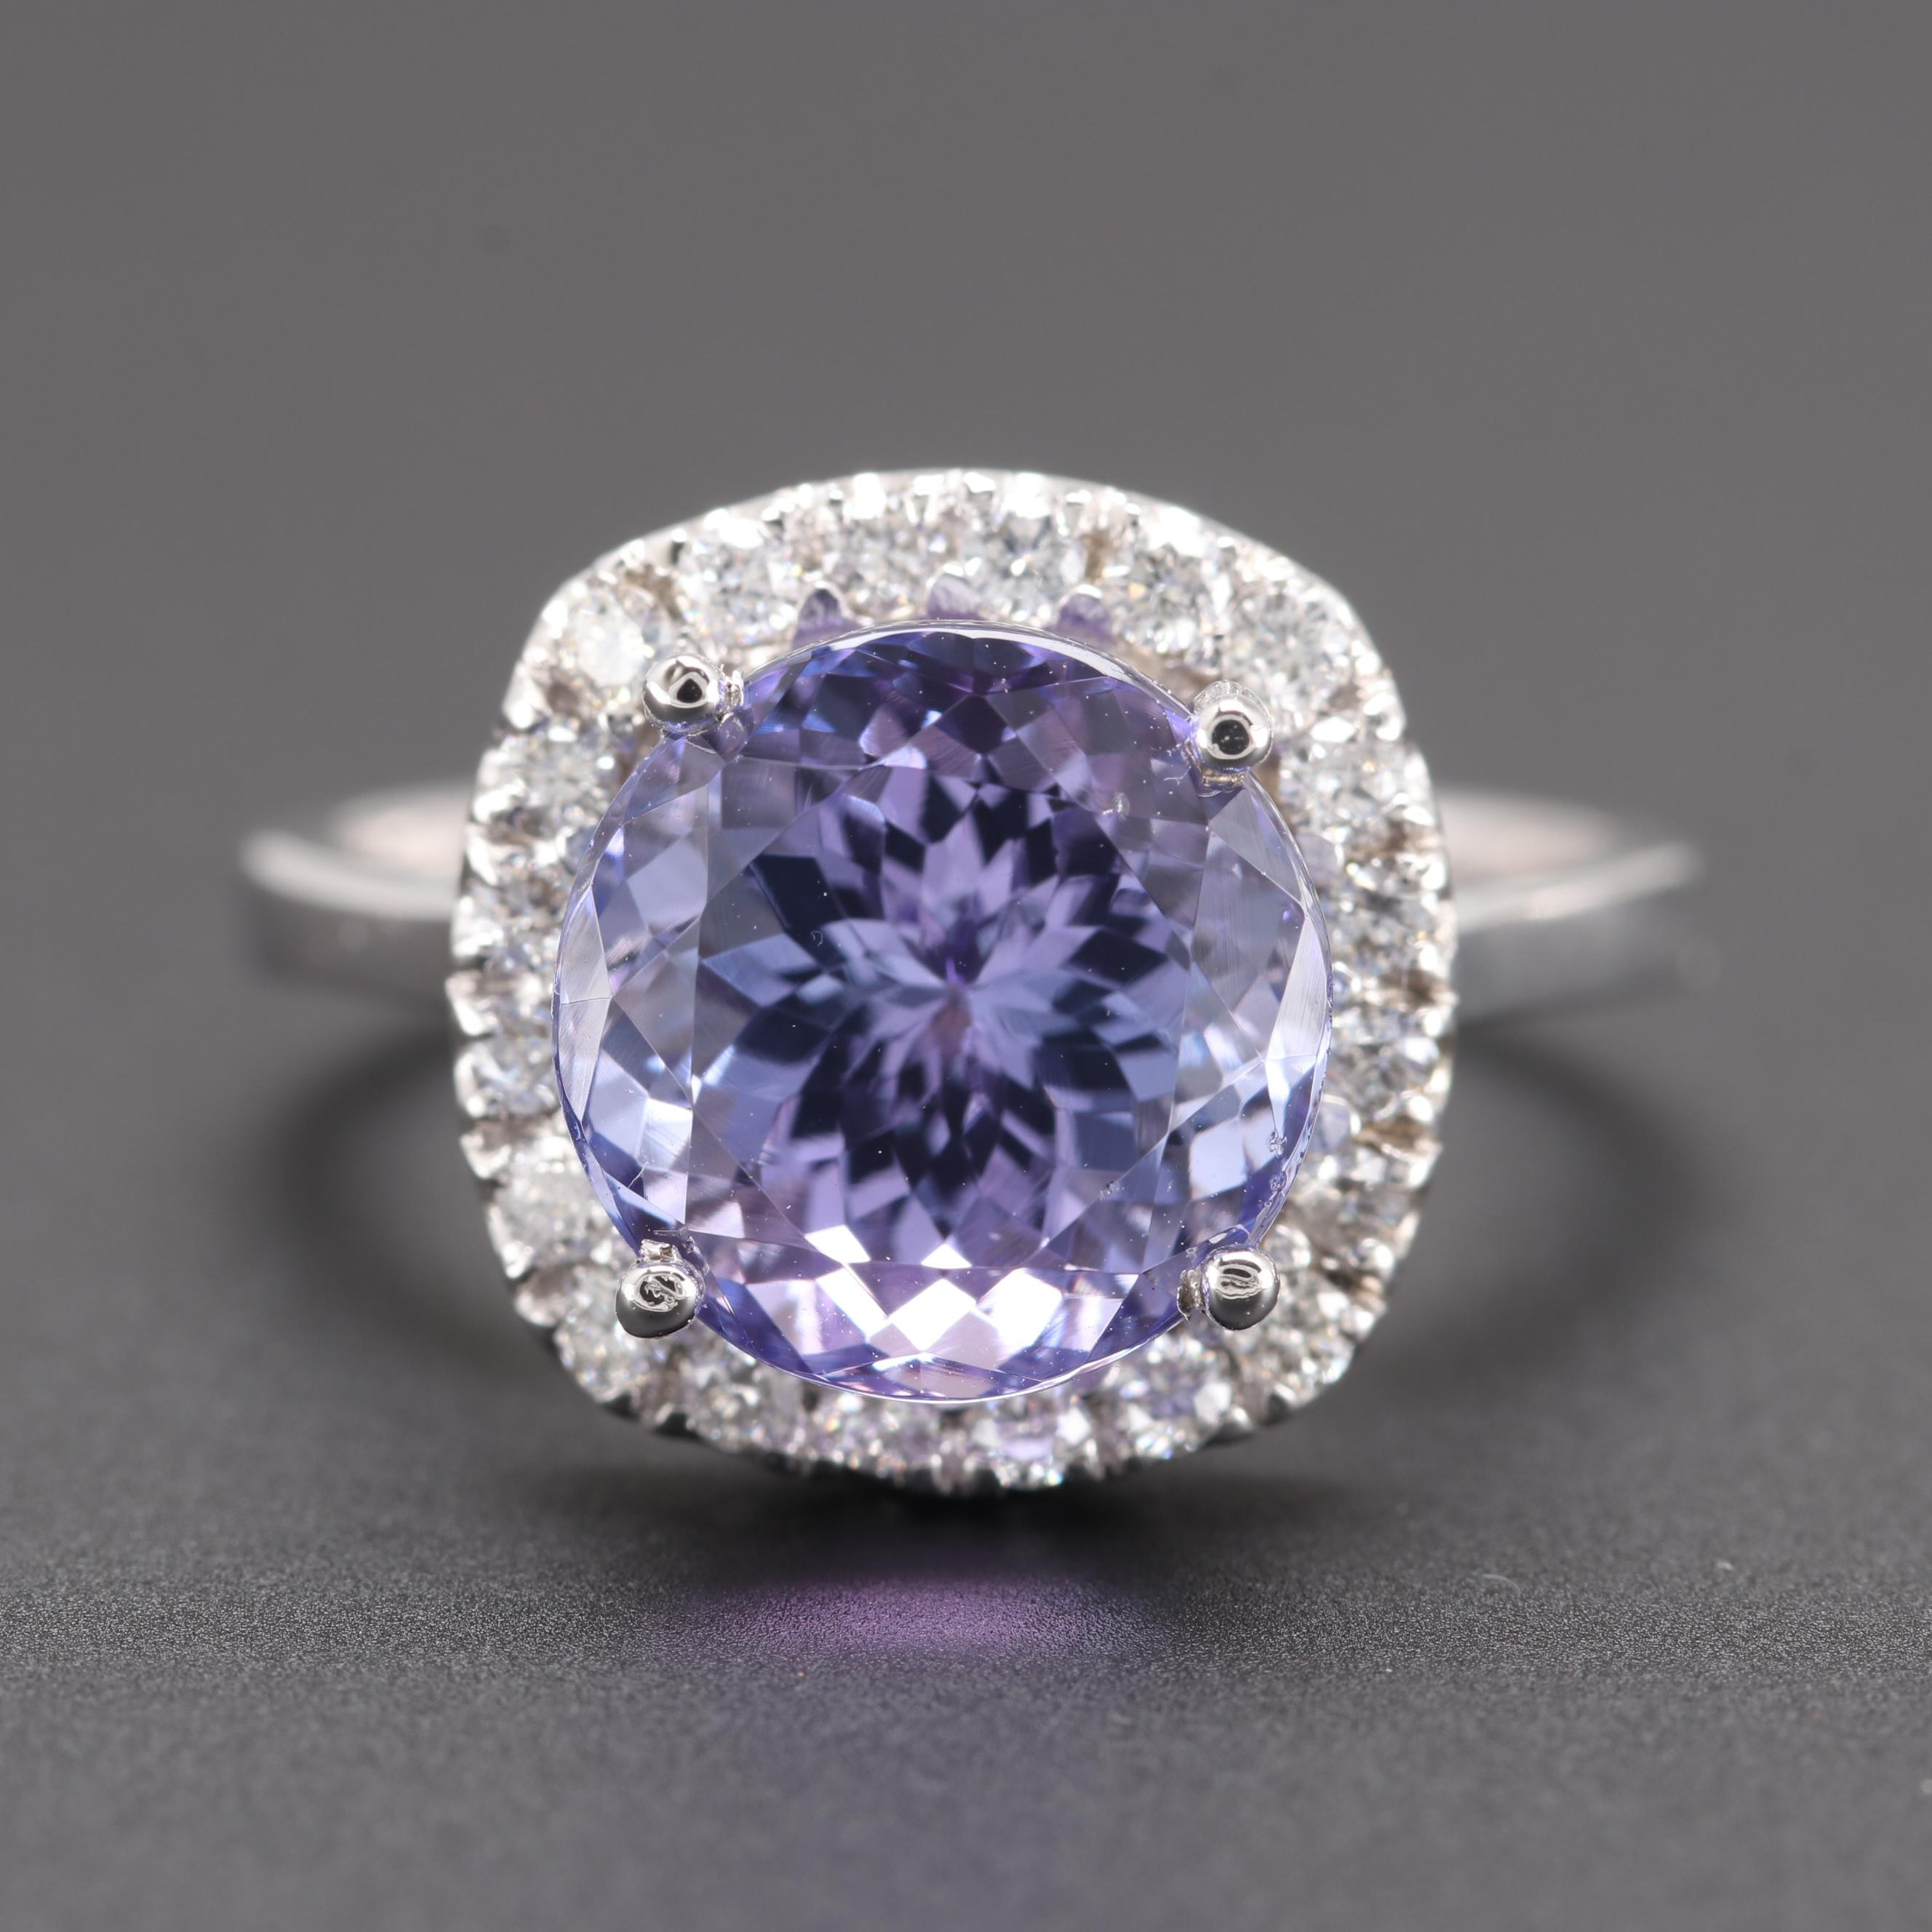 14K White Gold 5.09 CT Tanzanite and Diamond Ring